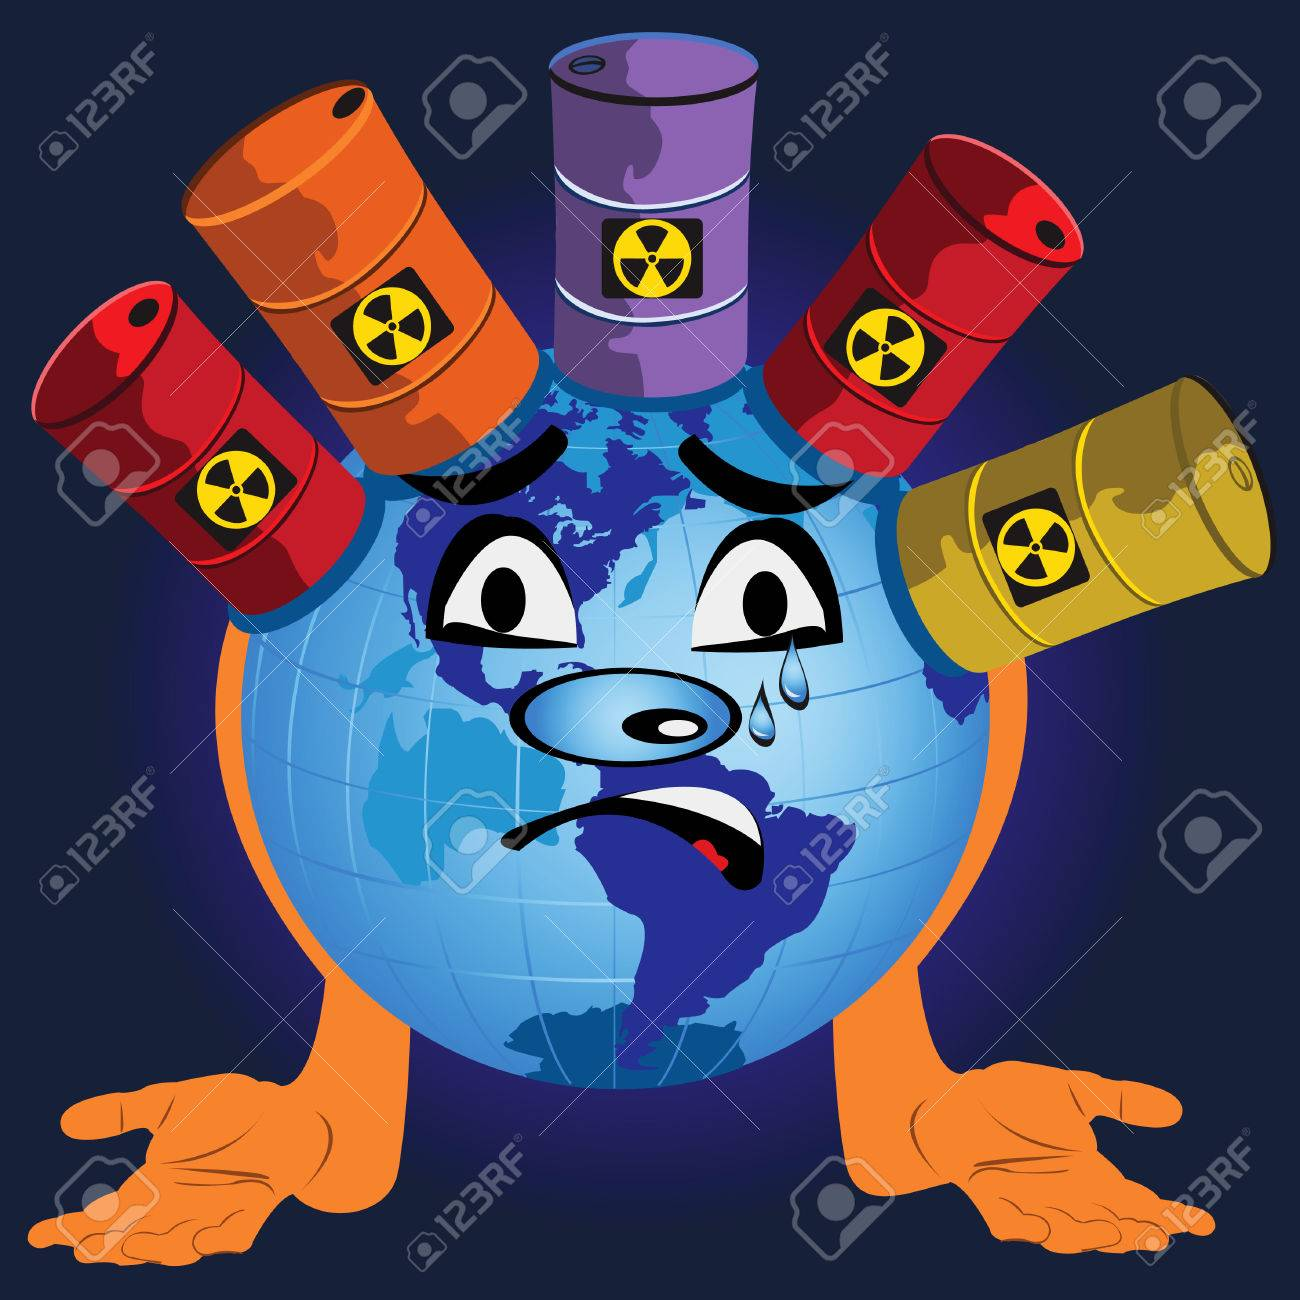 Fun vector illustration of a globe with toxic barrels. Stock Vector - 5387537